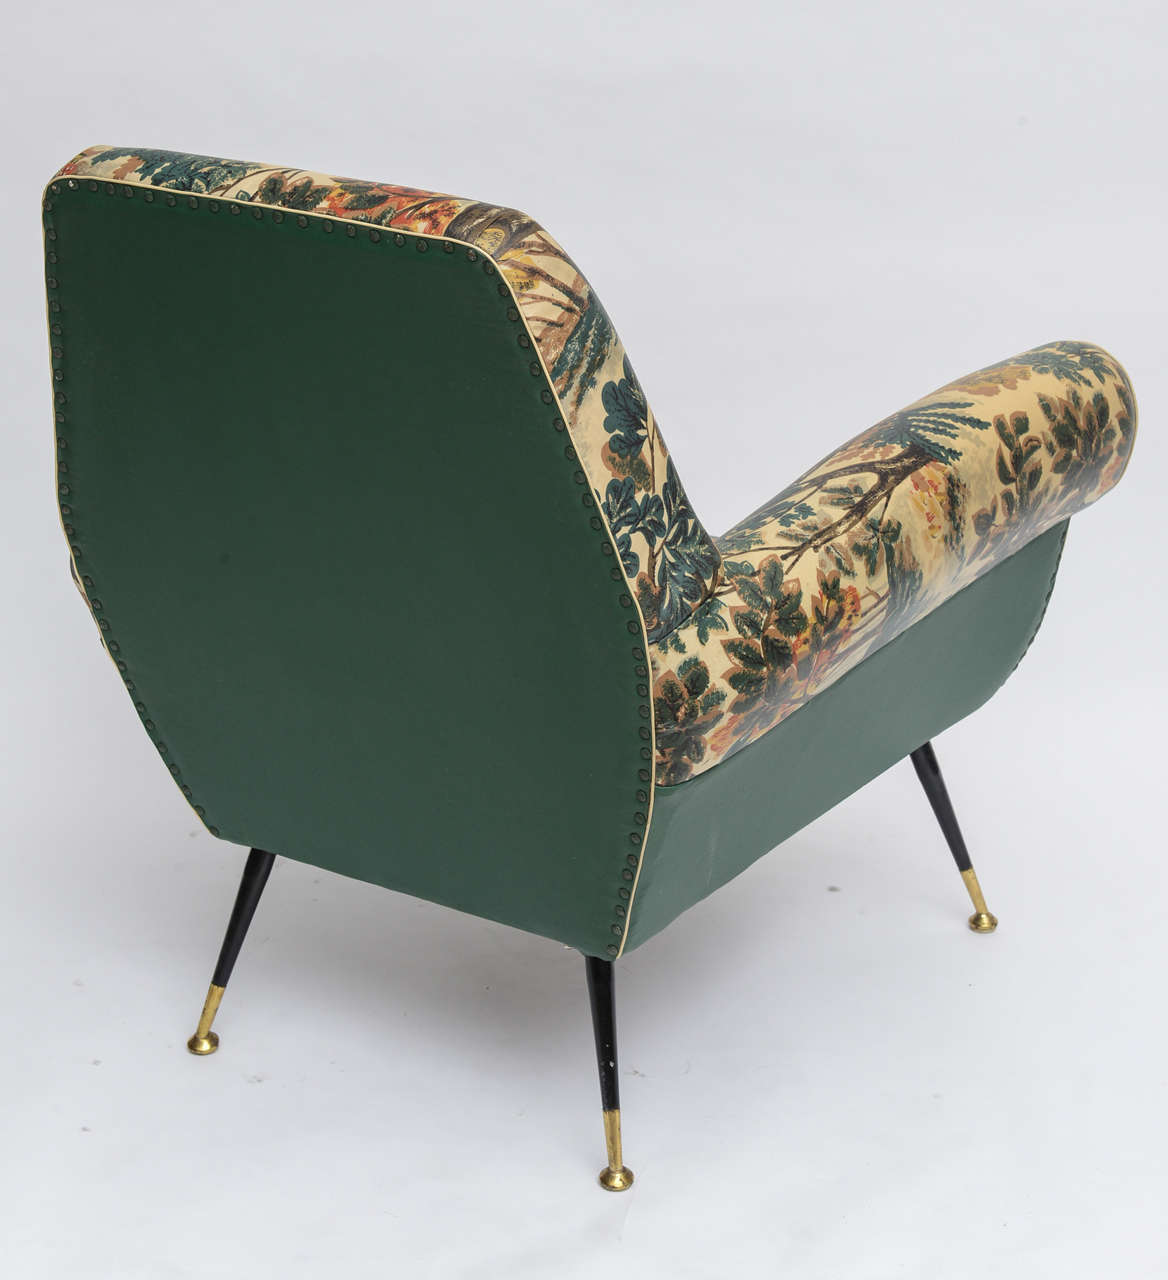 50's Italian Armchair with Original Upholstery (2 Available) 6